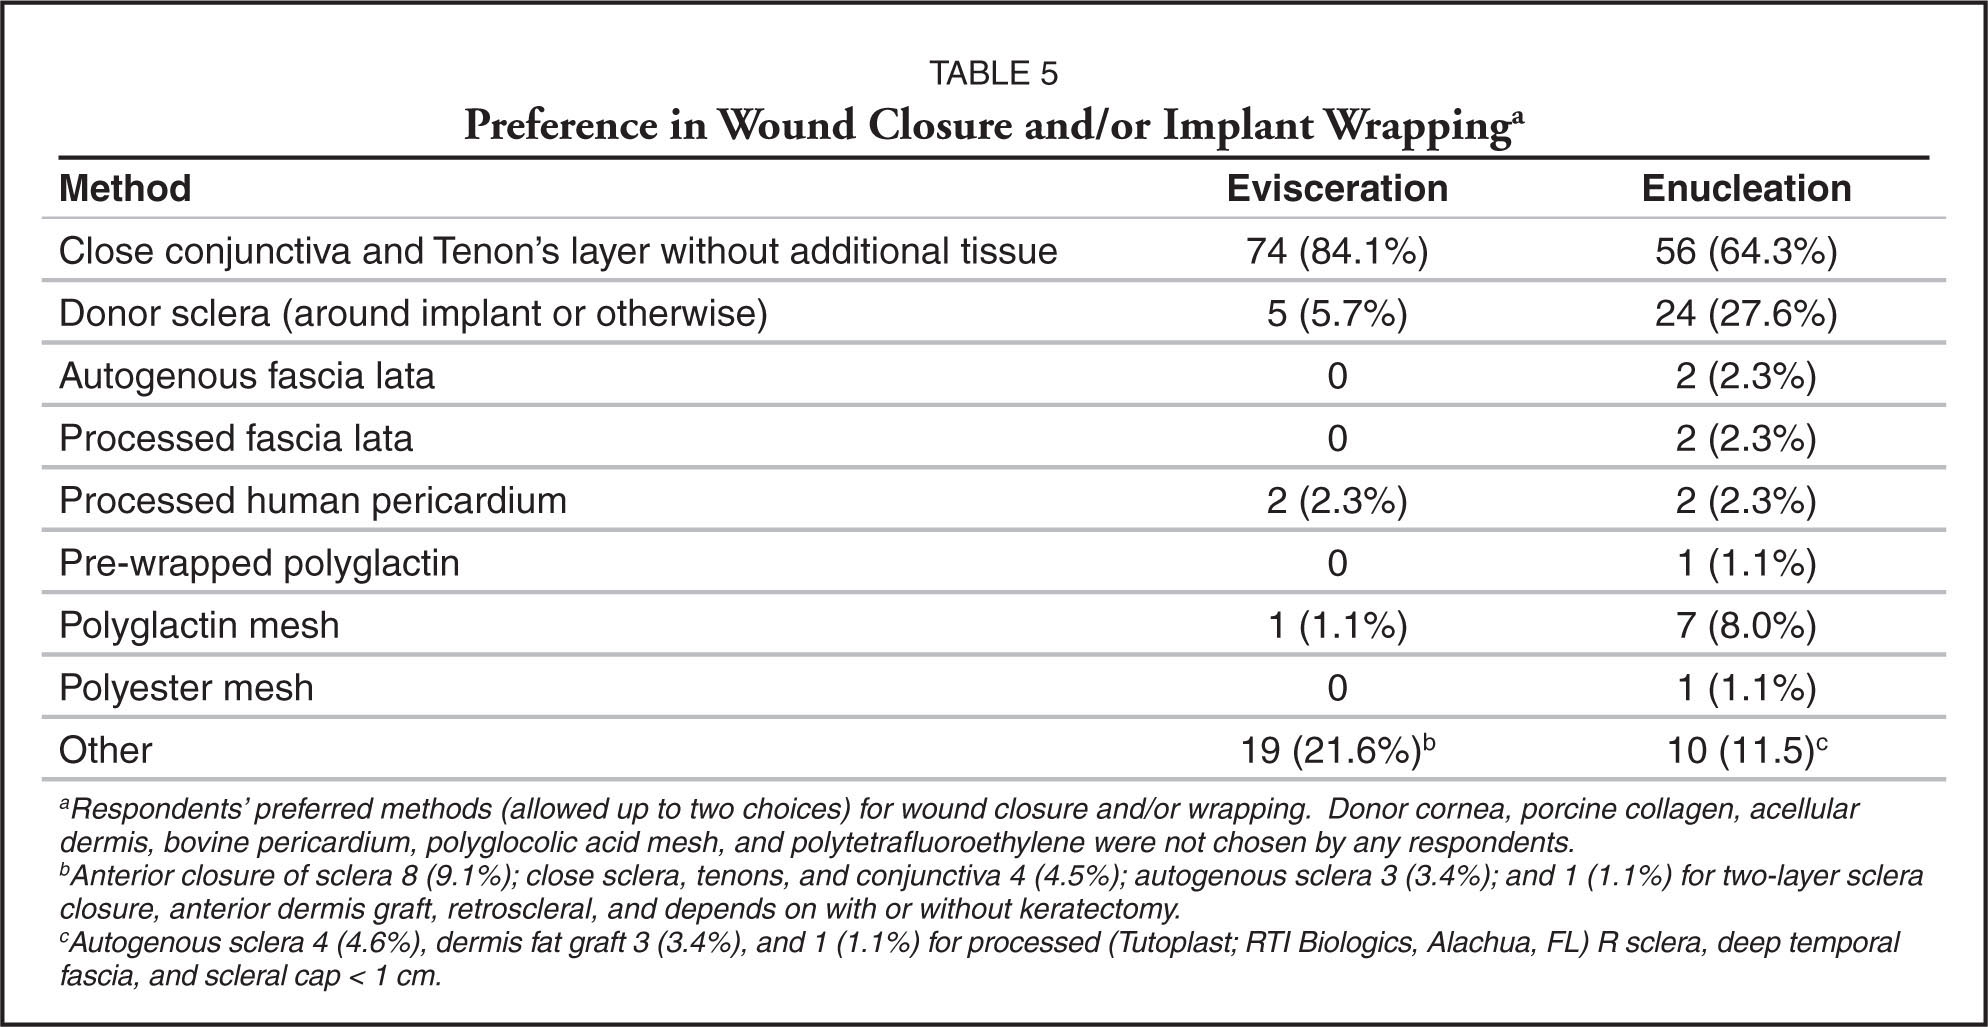 Preference in Wound Closure and/or Implant Wrappinga